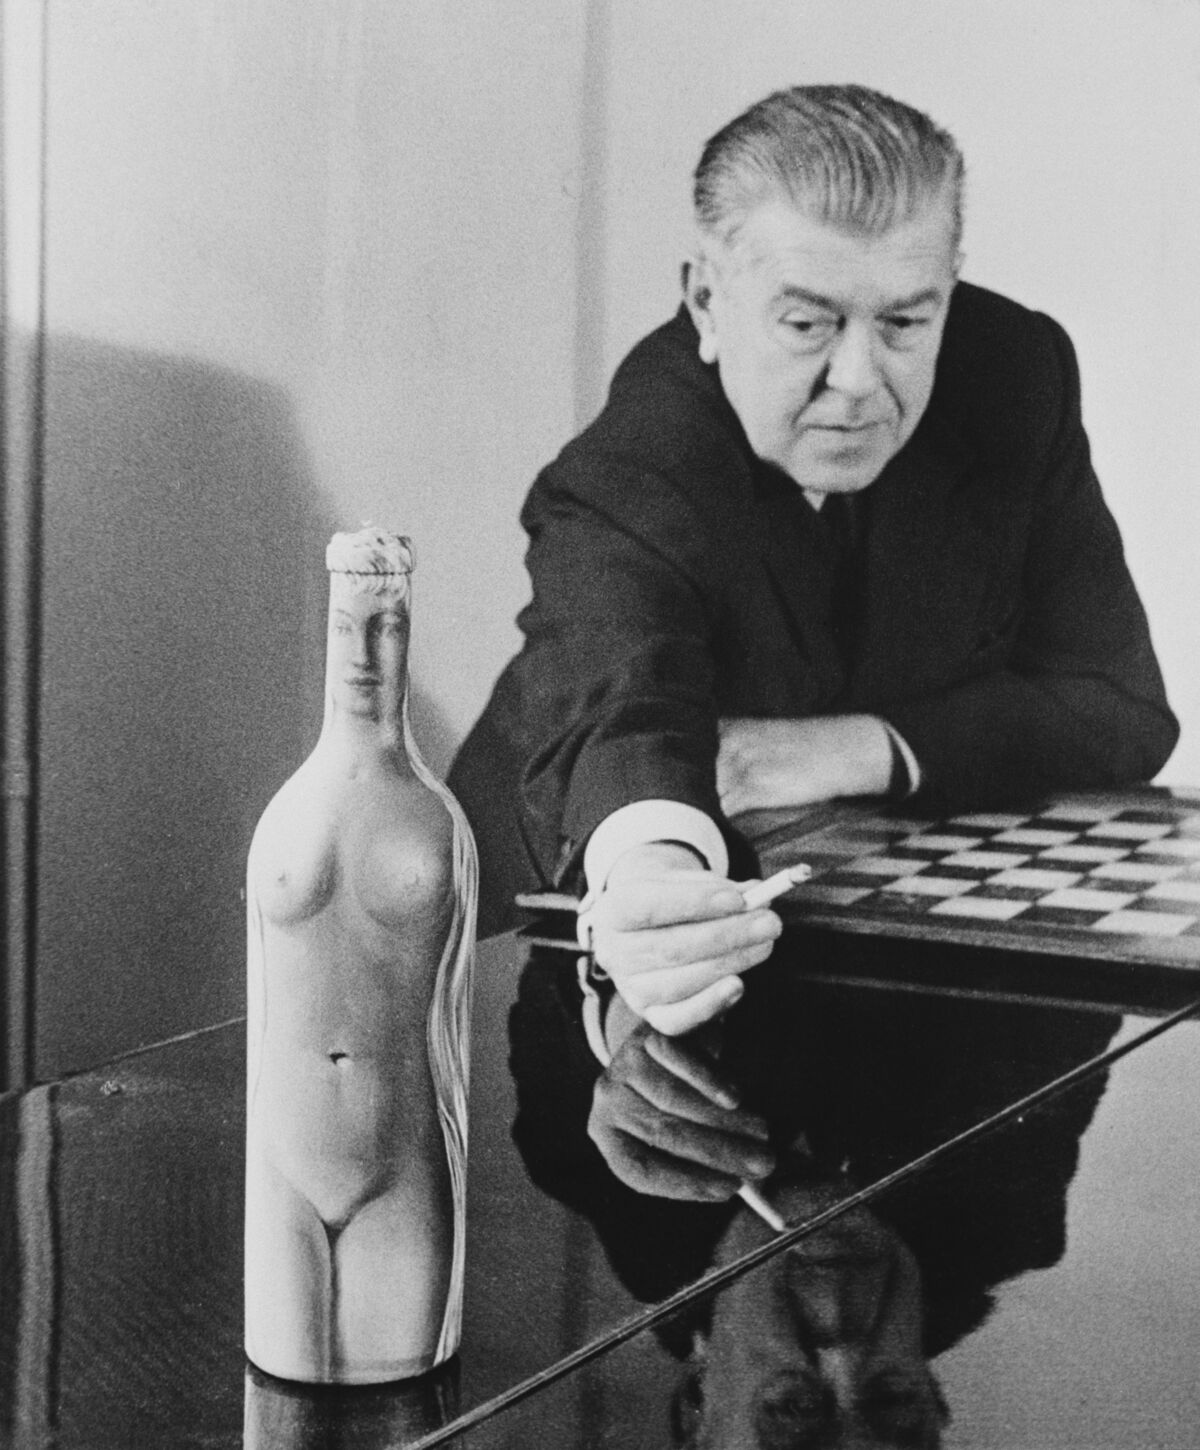 René Magritte with Femme-Bouteille, c. 1955. Photo by Archive Photos/Getty Images